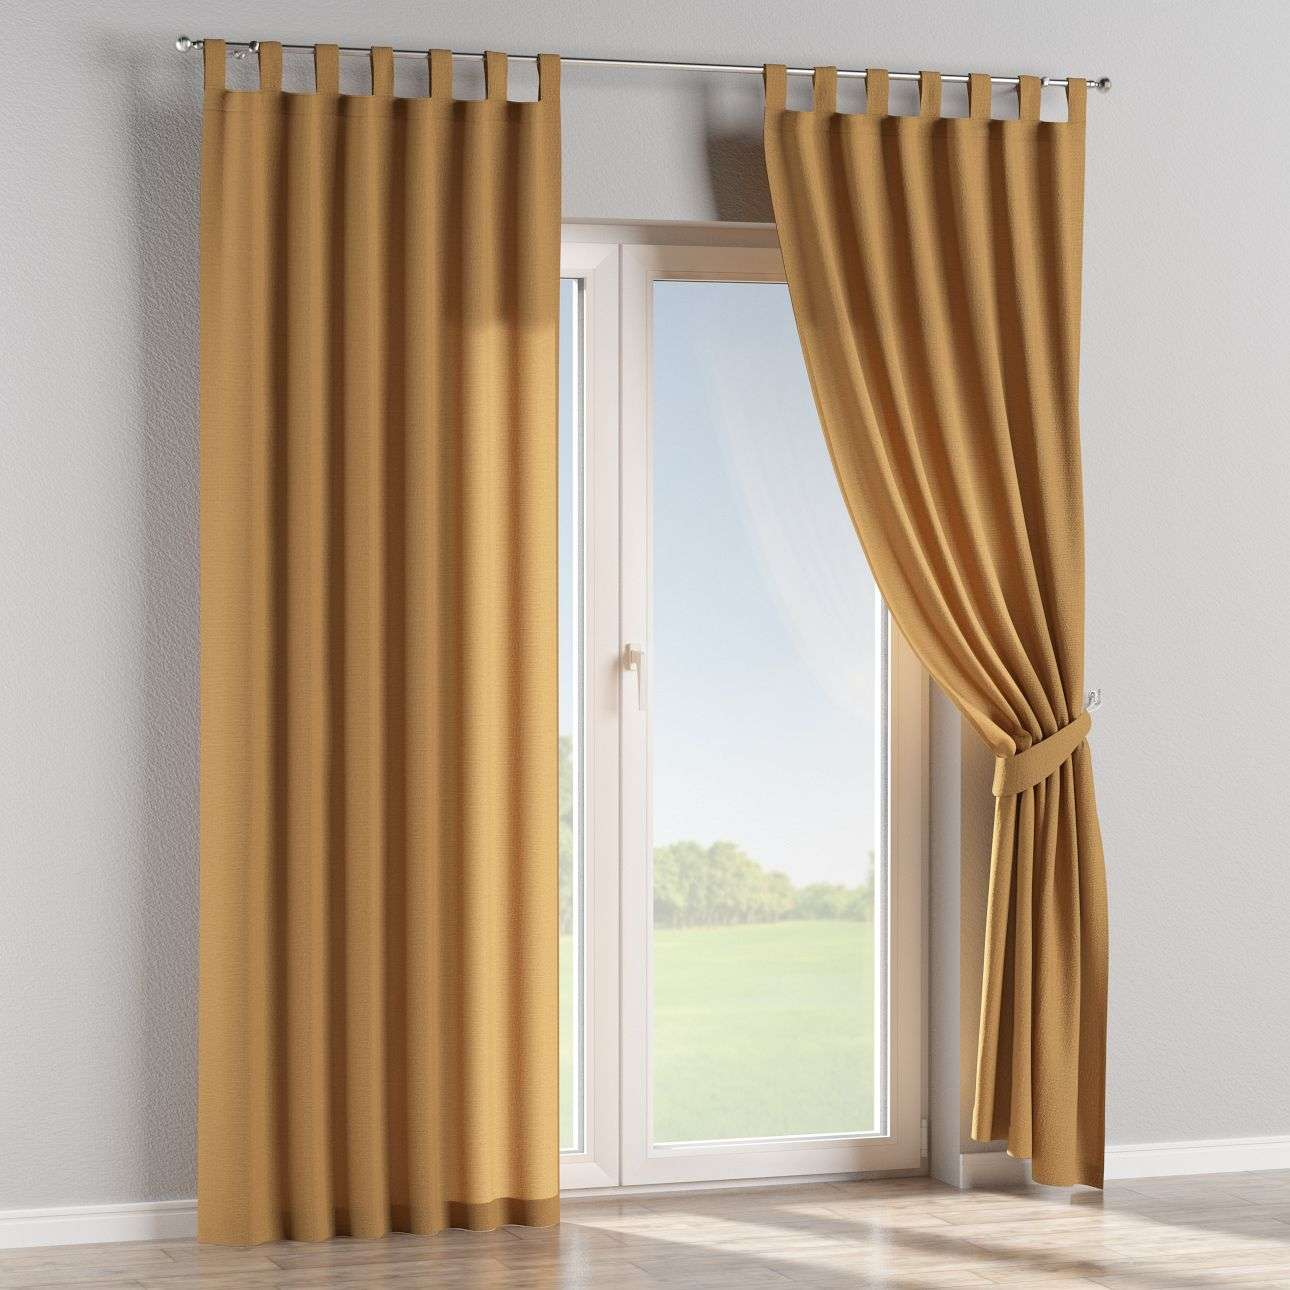 Tab top curtains 130 x 260 cm (51 x 102 inch) in collection Loneta , fabric: 133-12